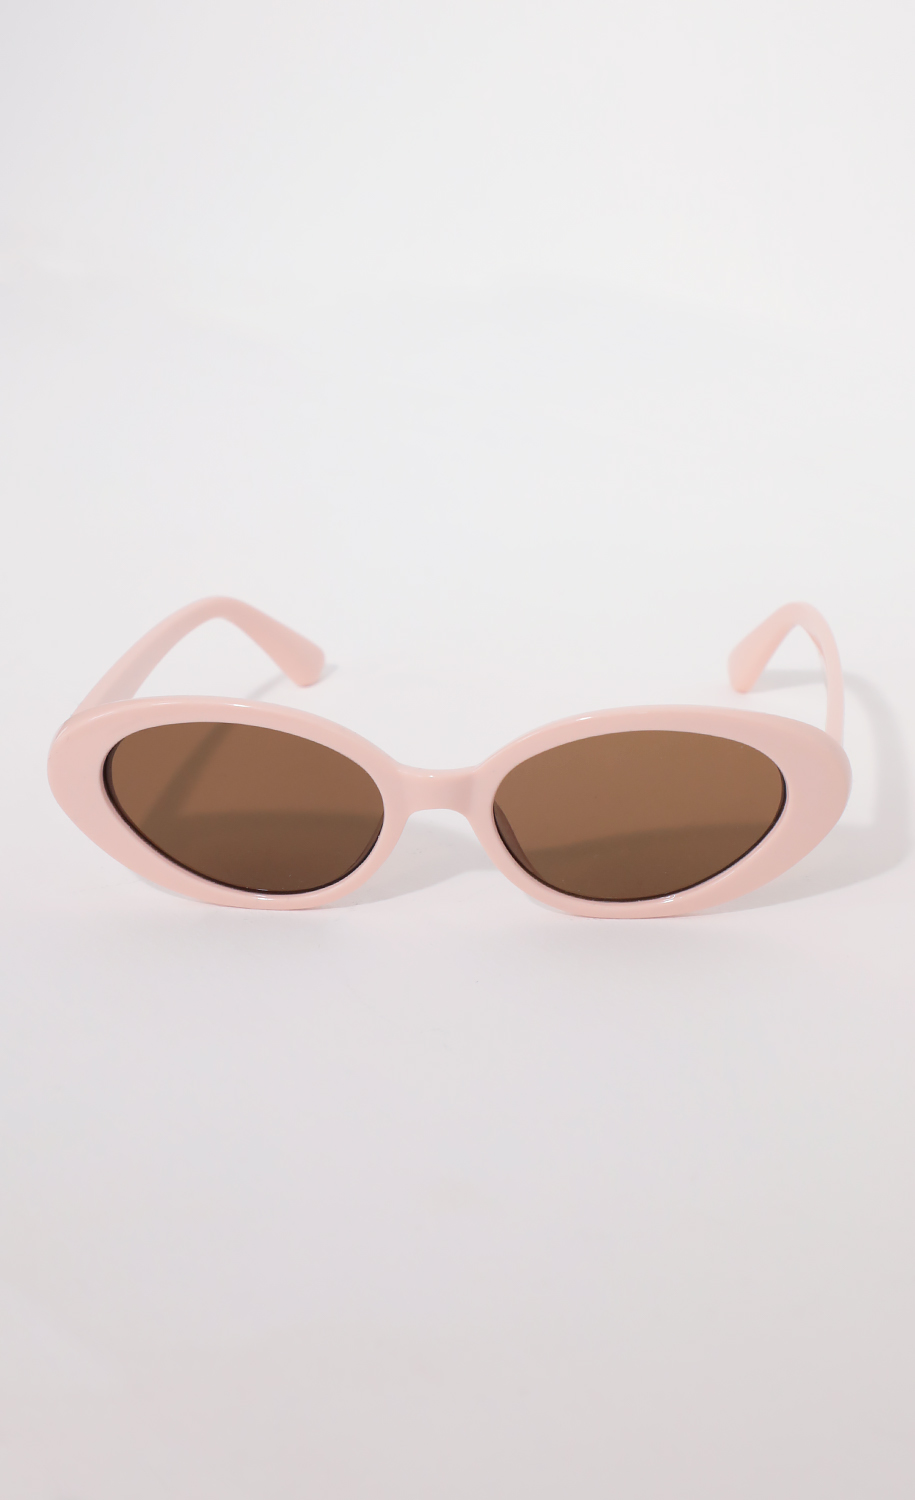 The Jet Setter Sunglasses in Dusty Pink